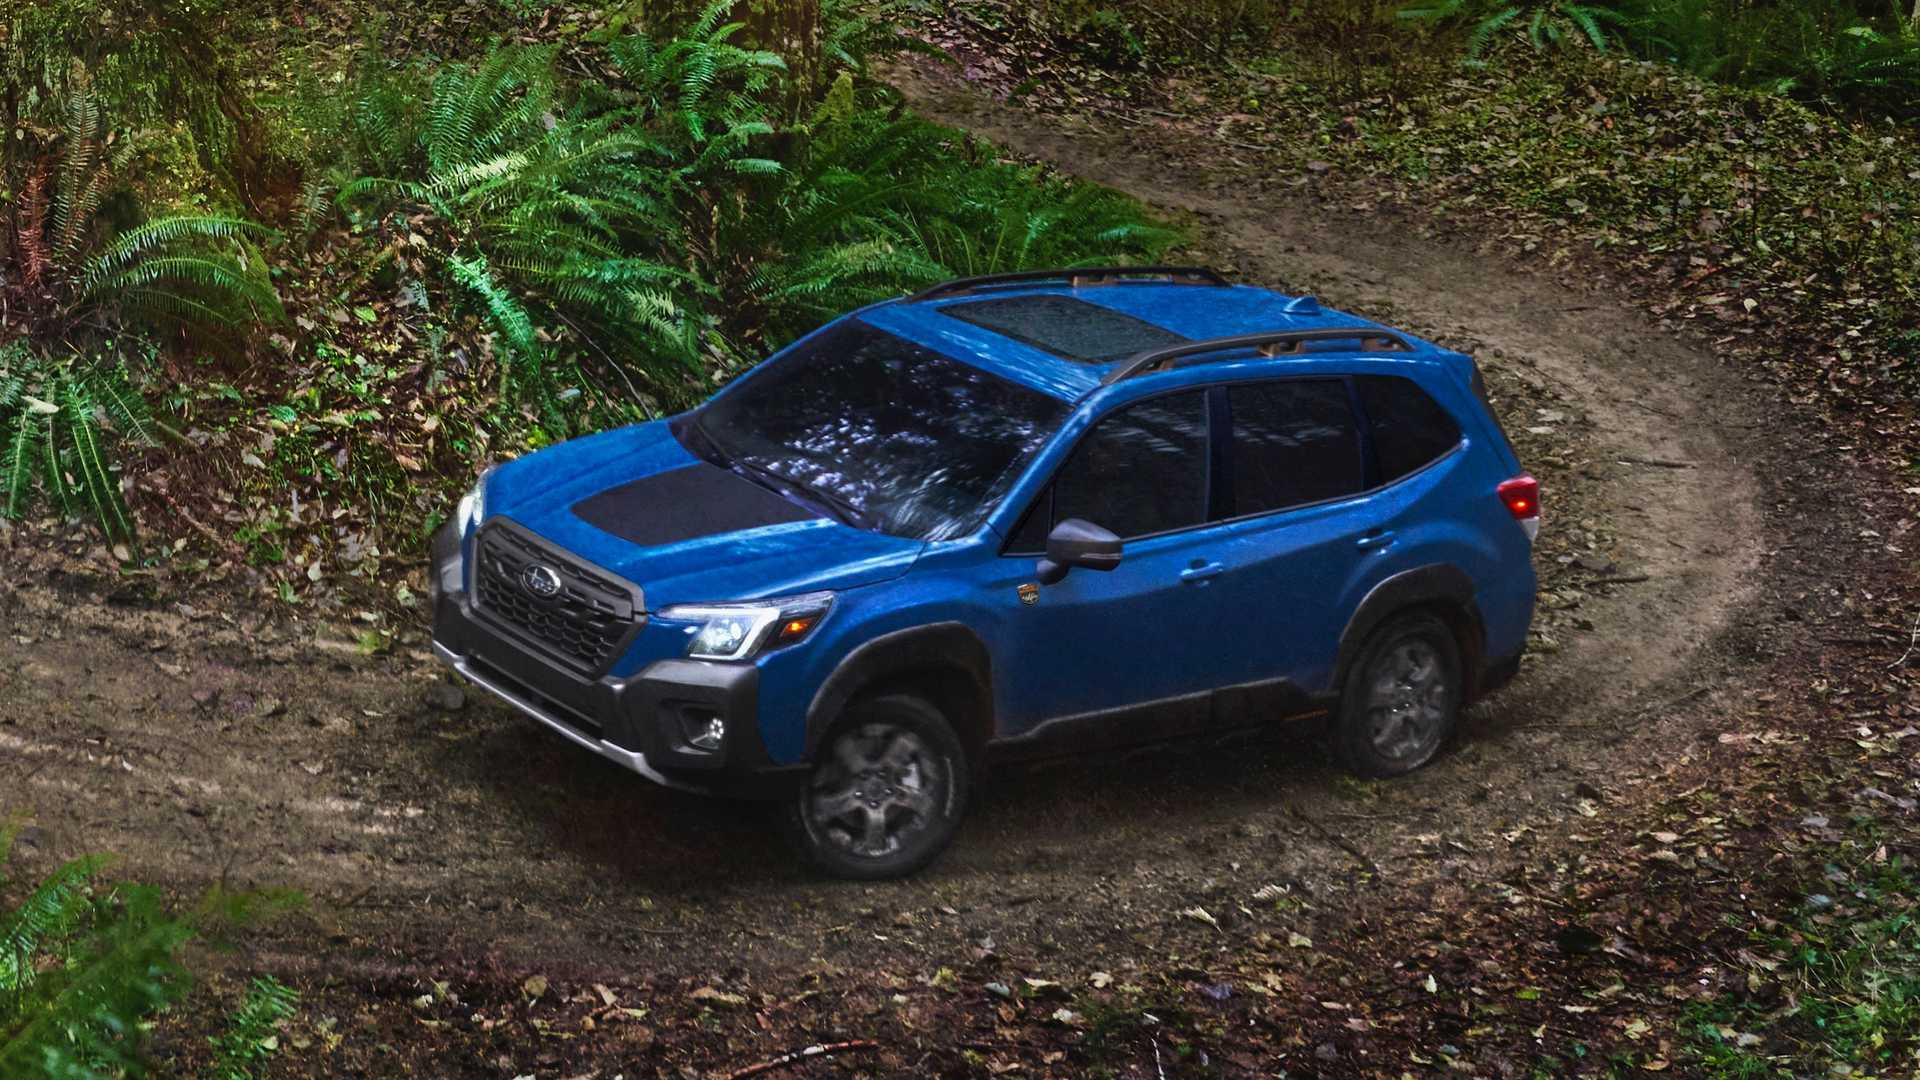 A Forester That Can Actually Tackle The Forest: Subaru Shows Off The All-New 2022 Subaru Forester Wilderness